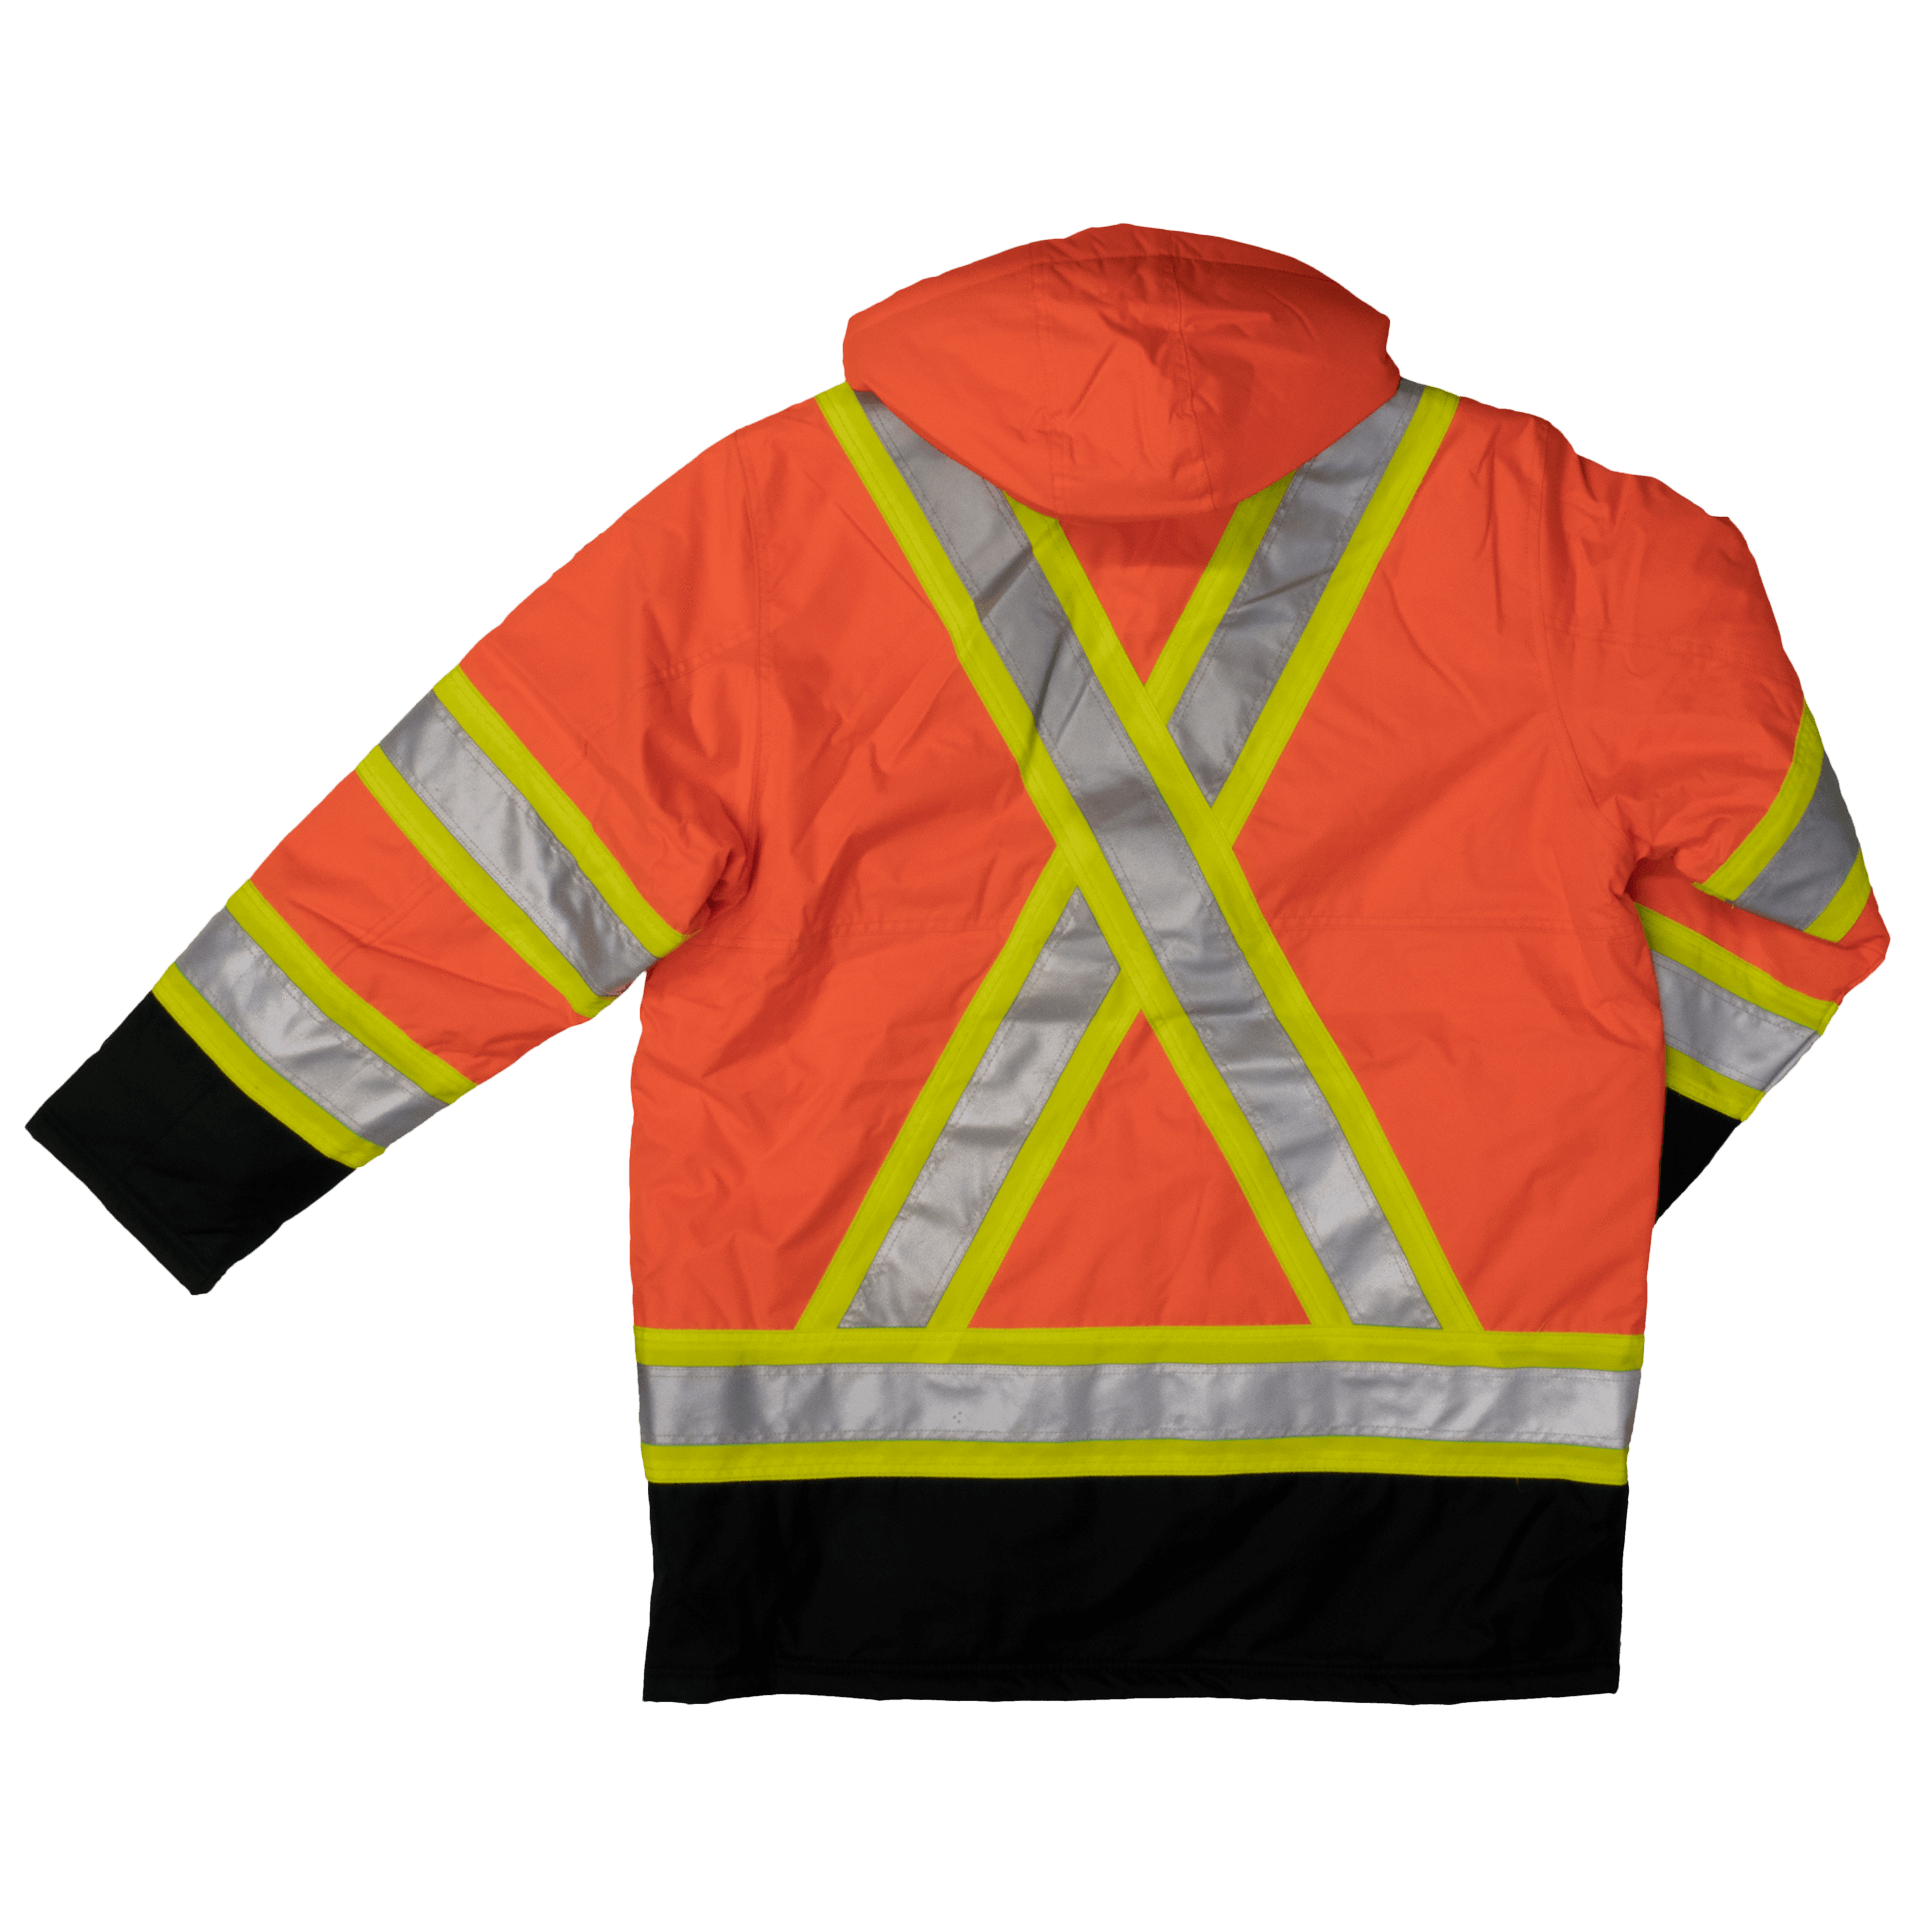 59480fbe7 Work King s176 Insulated 300D Poly Oxford Safety Parka | Orange | S-3XL